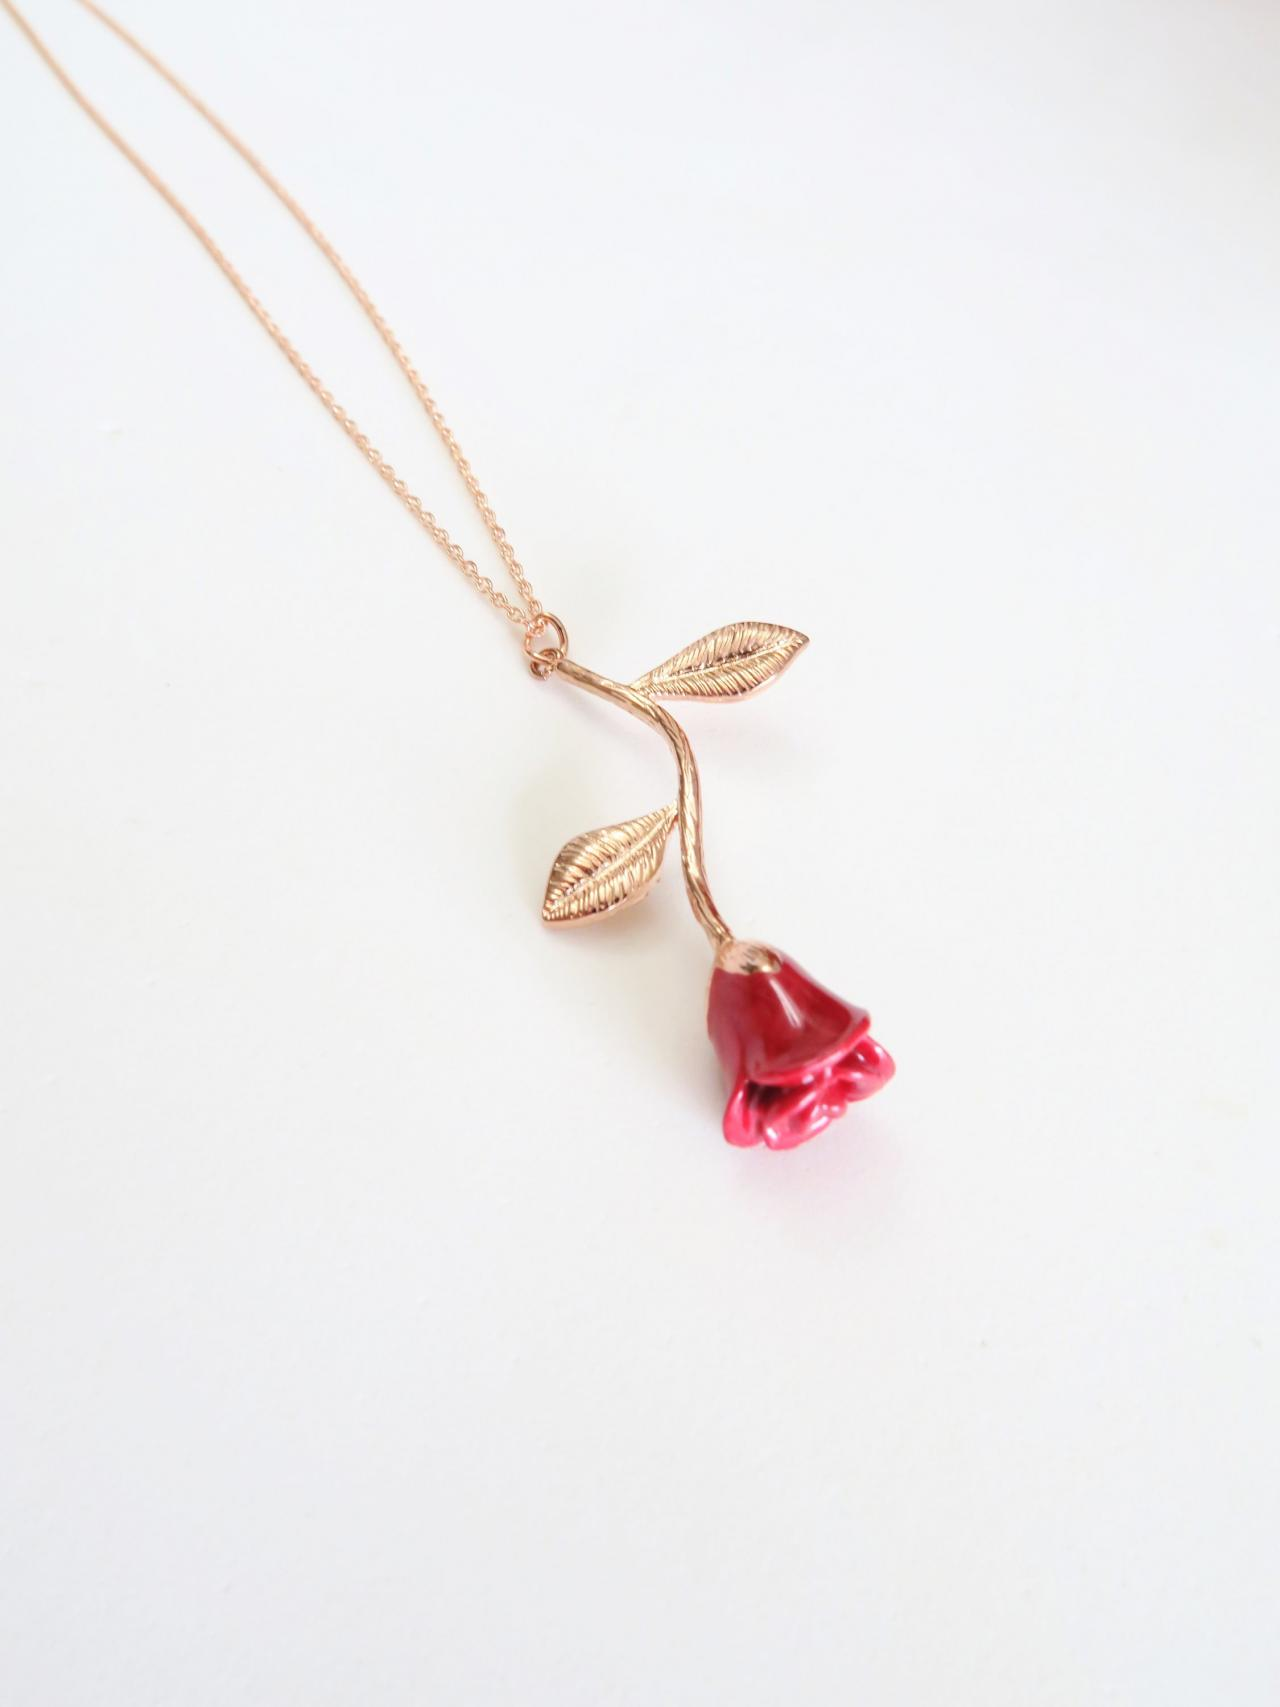 Red Rose Flower Pendant Necklace for her Valentin's Day for Girlfriend Mother's day Gift Wedding Necklace, Birthday Gift for Her (N041)